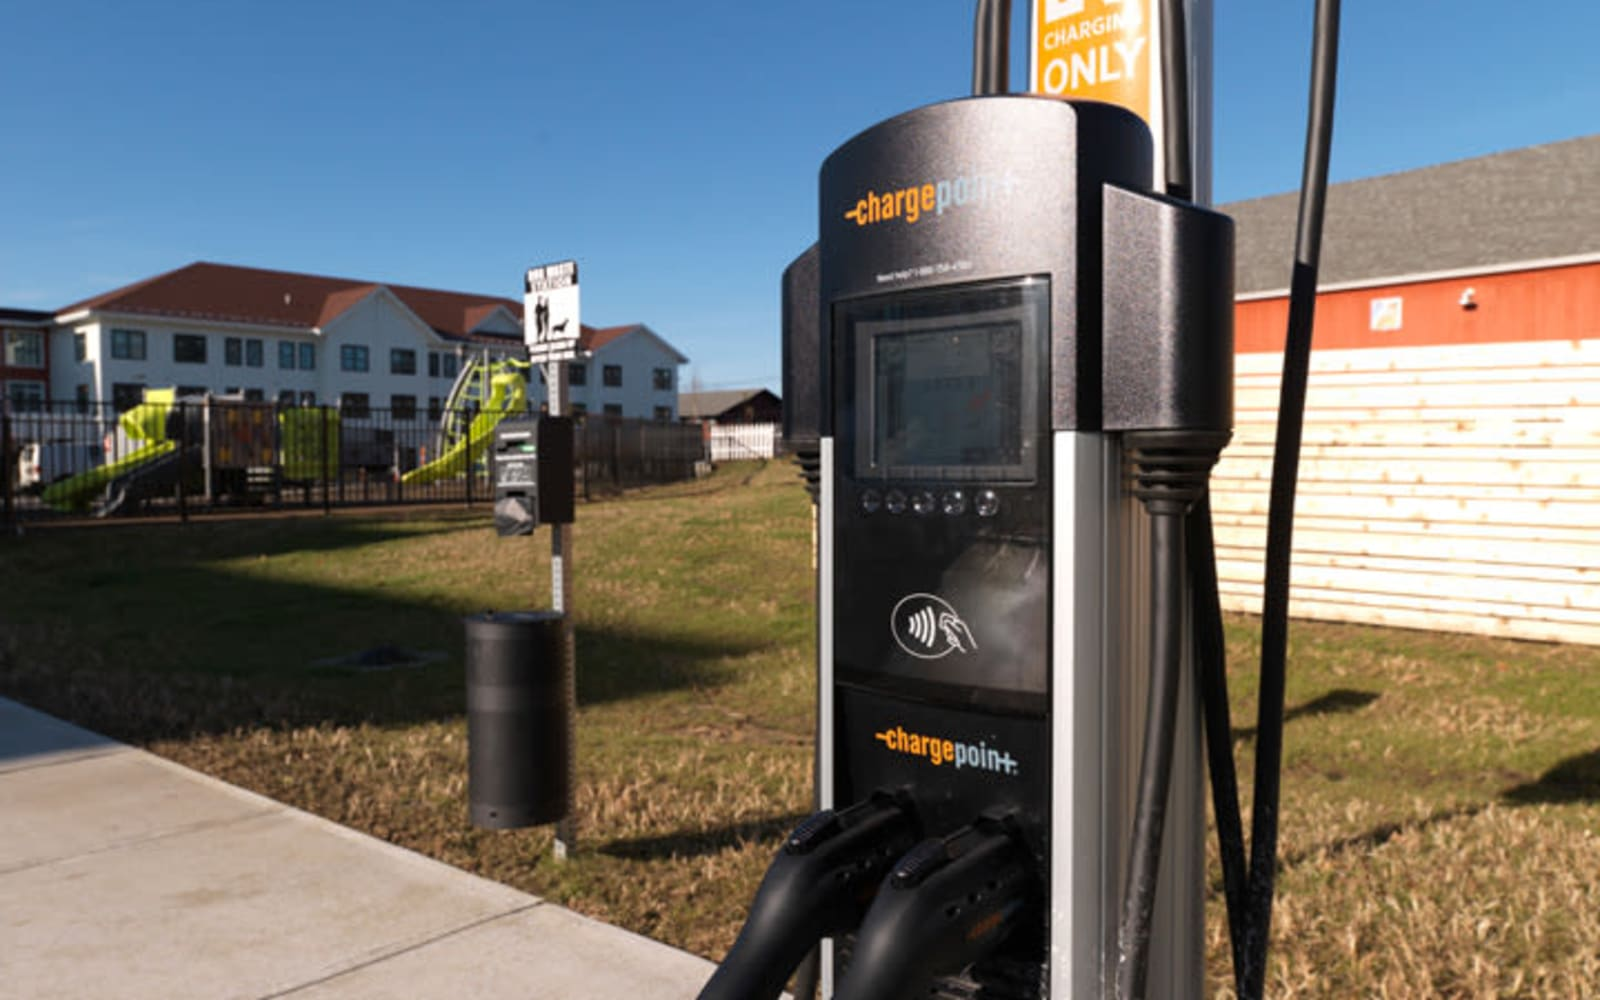 Electric car charging at North Square Apartments at The Mill District in Amherst, Massachusetts